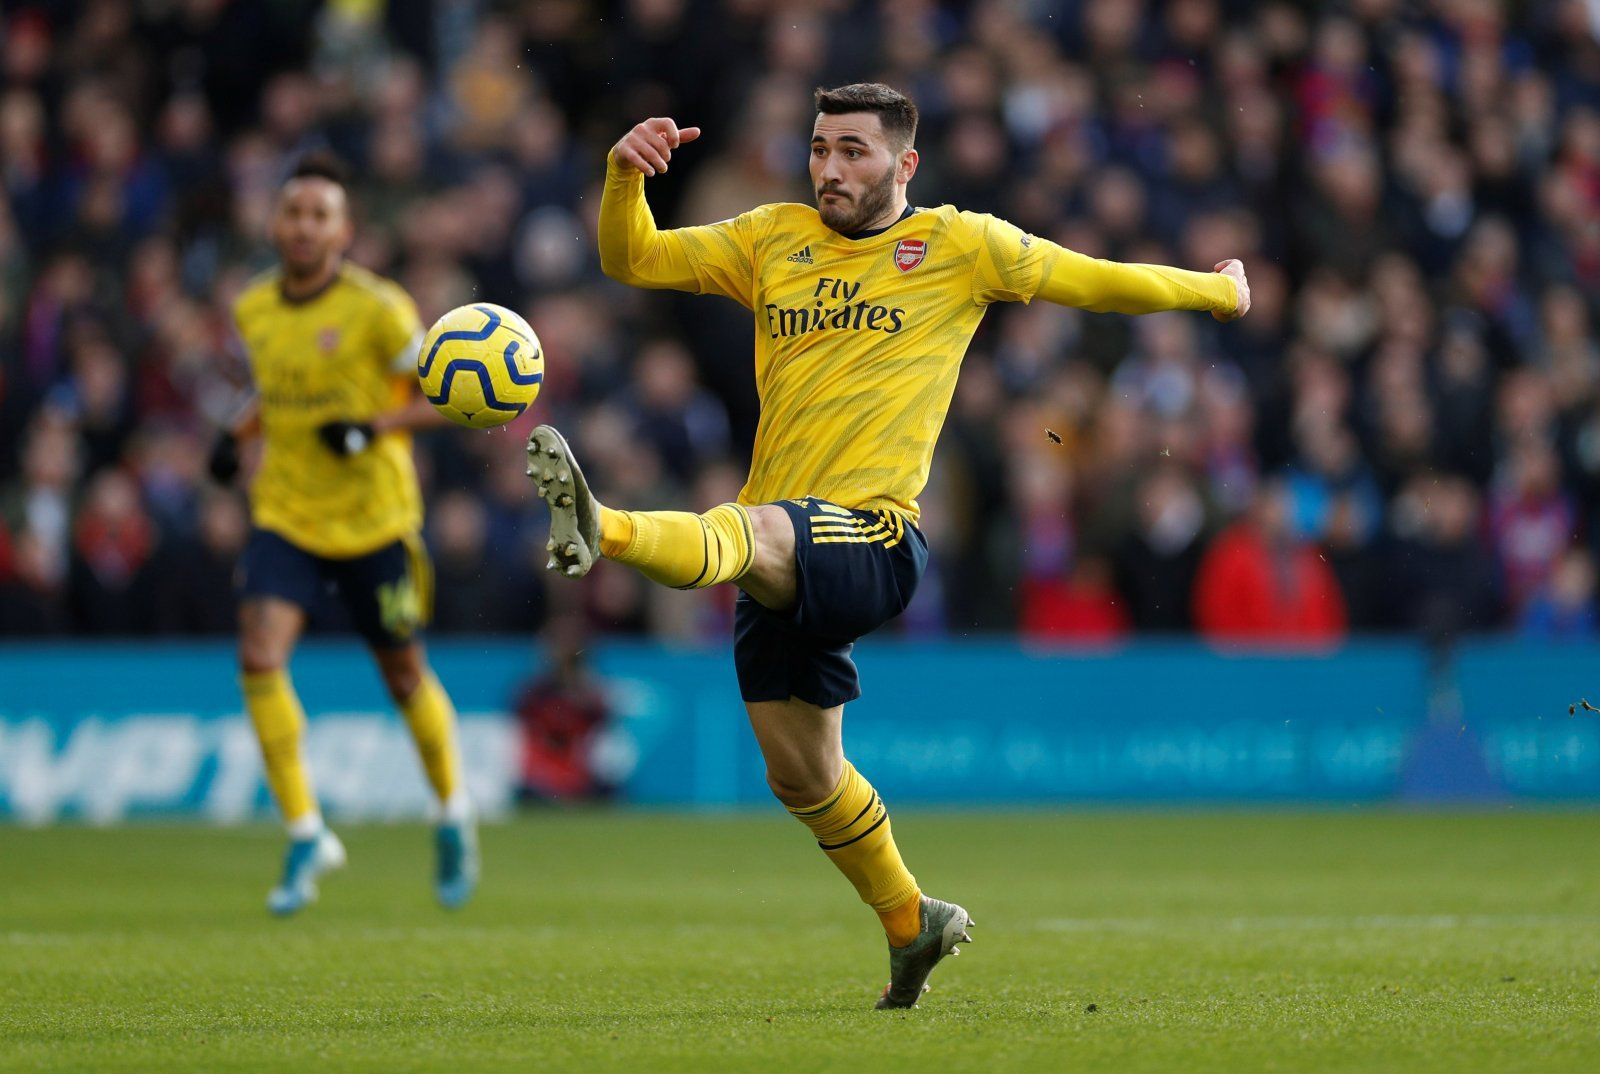 Unsung Hero: Arsenal's Sead Kolasinac goes under the radar in draw against Crystal Palace